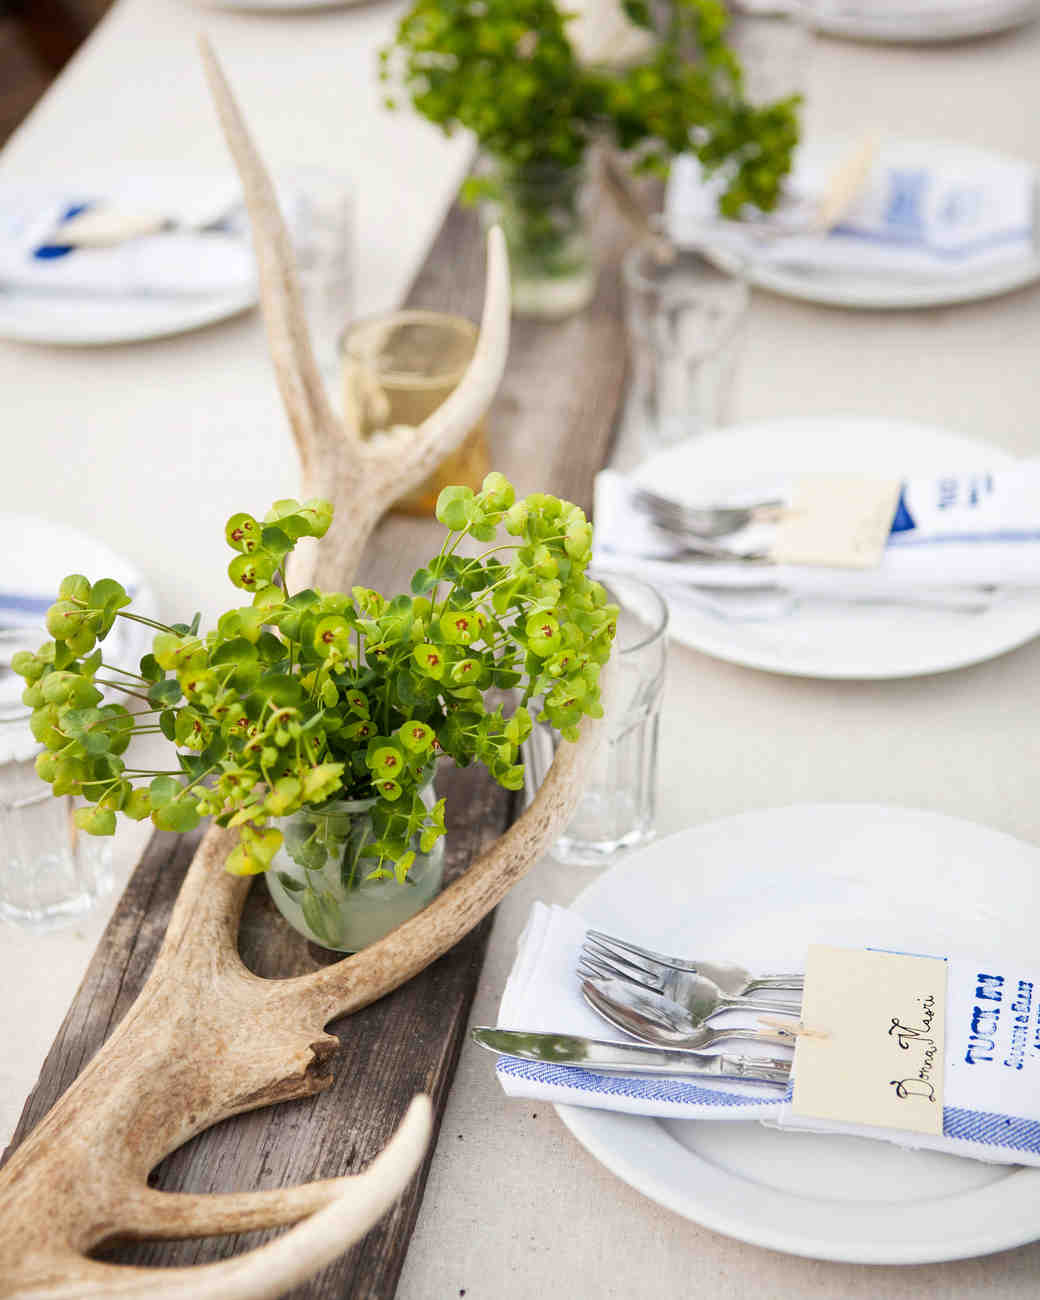 rw-ellie-shawn-table-settings-110423.jpg